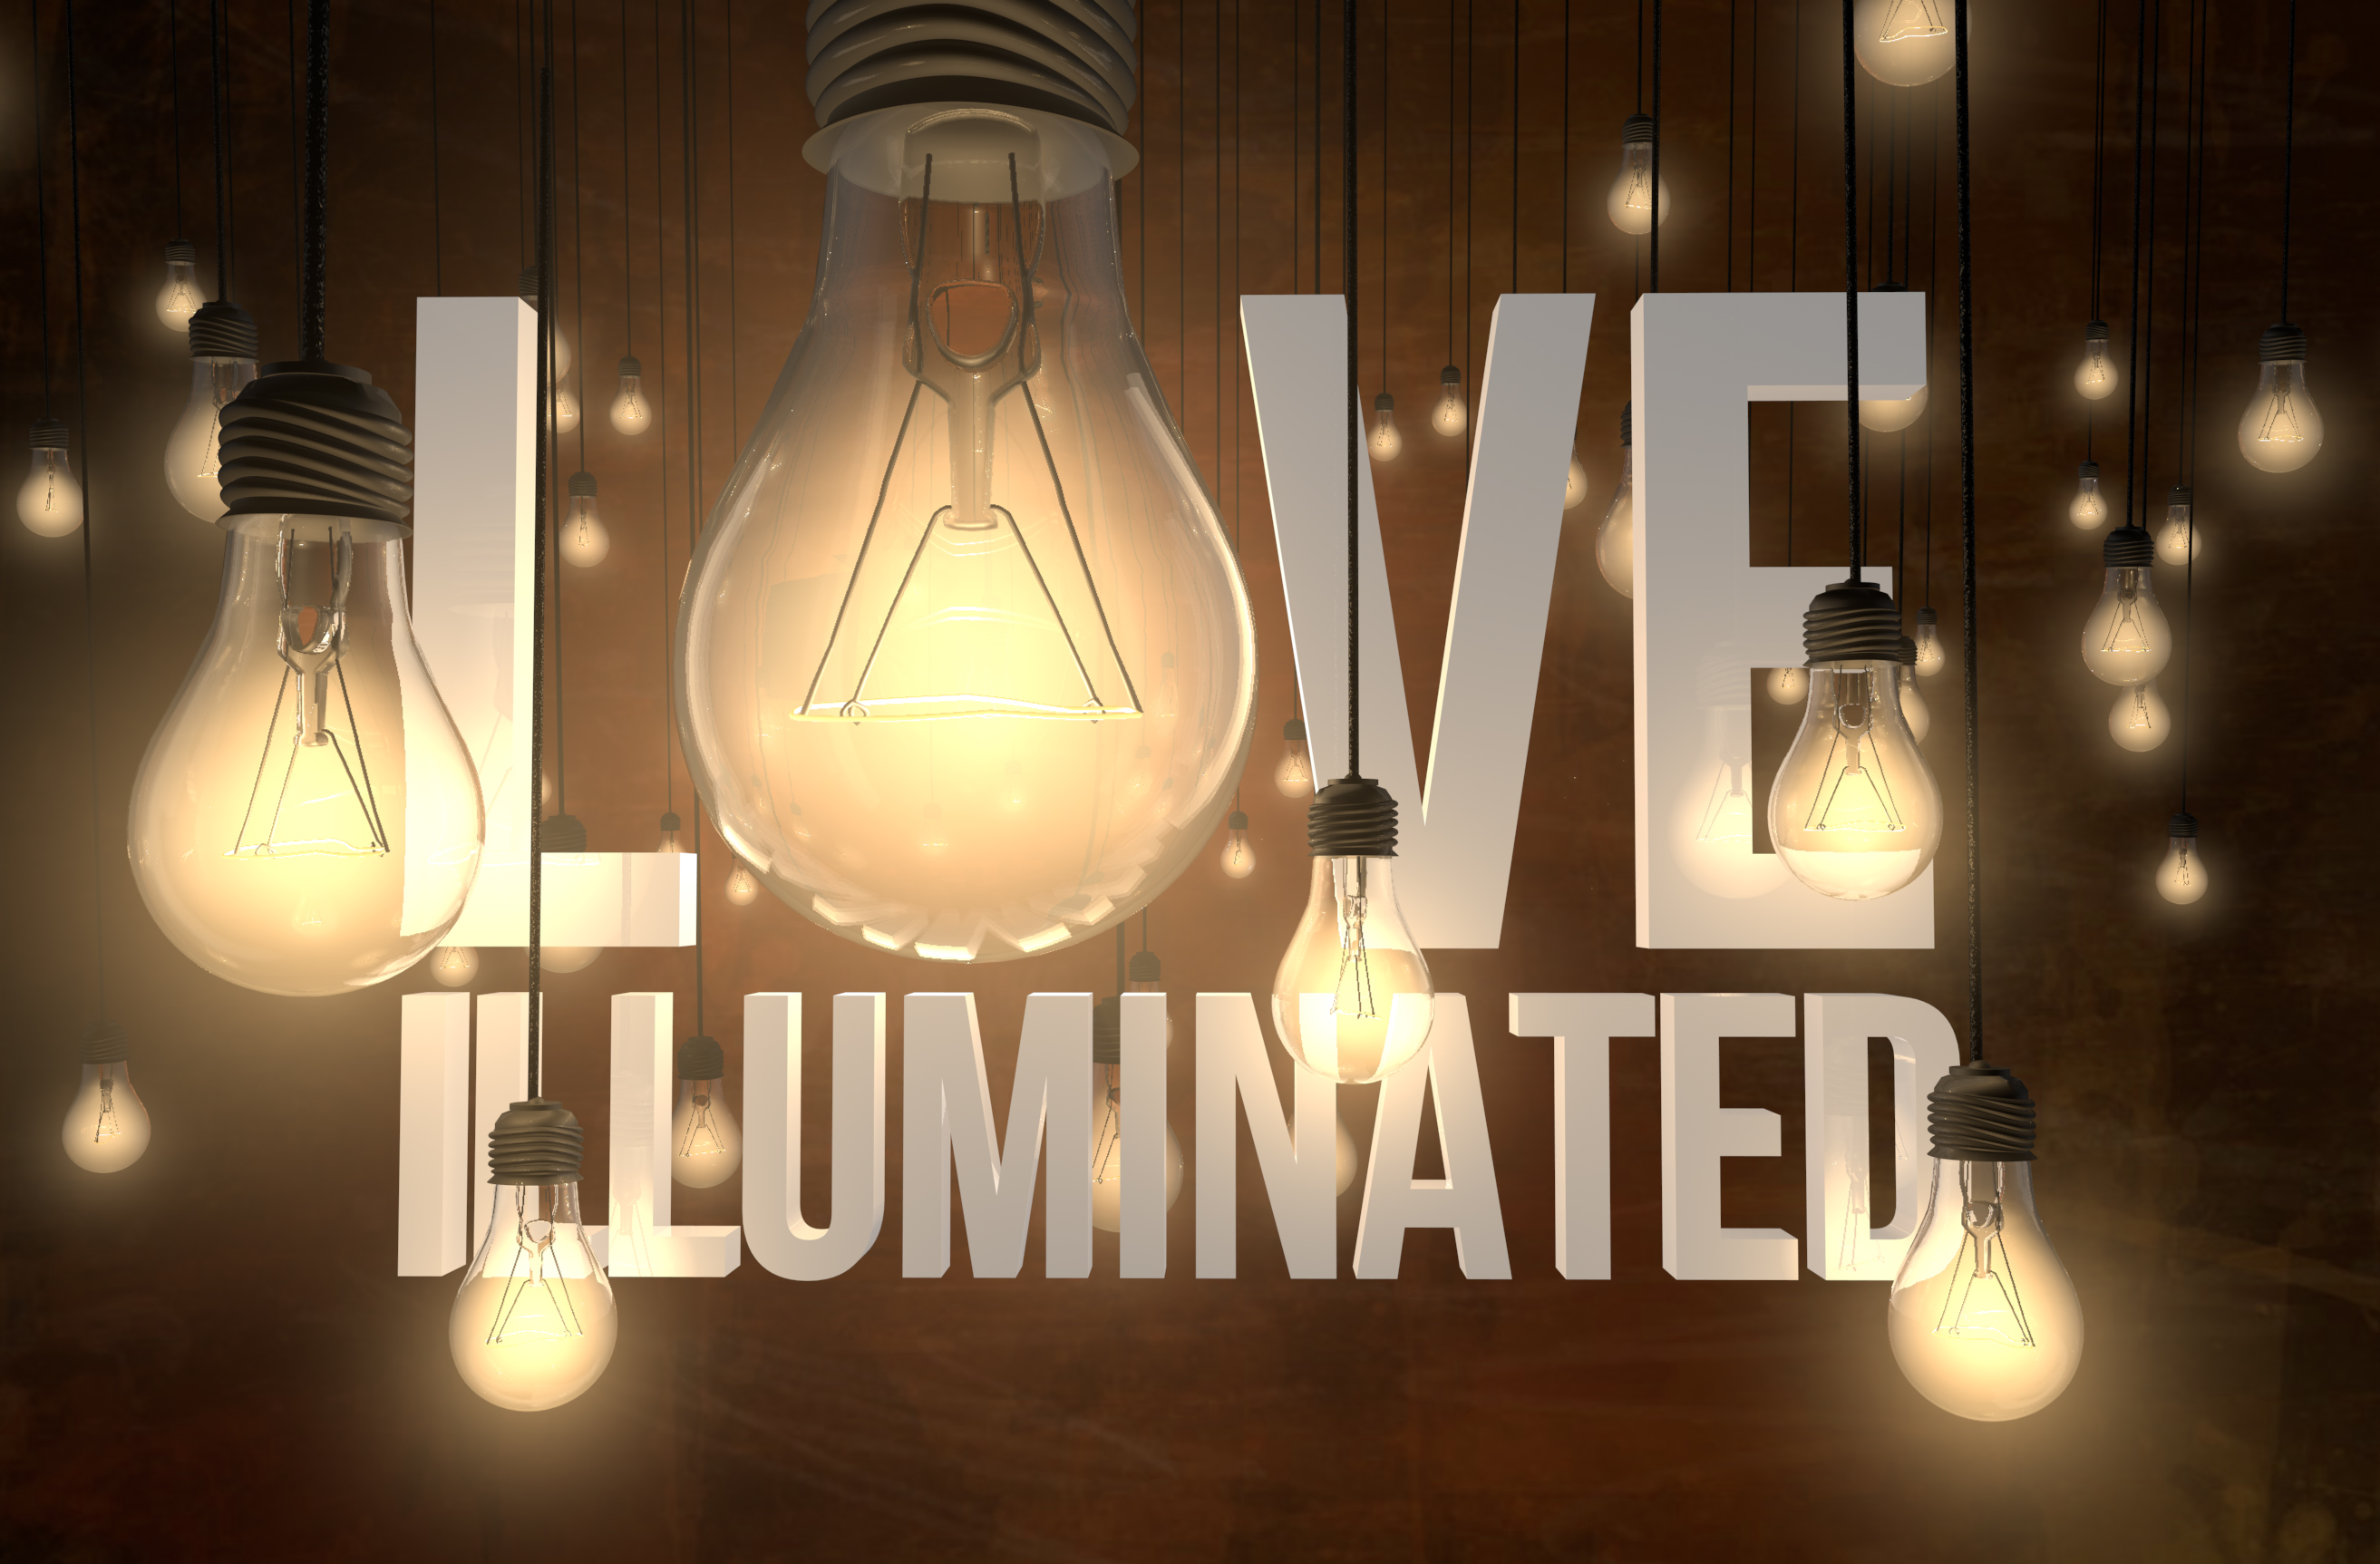 Love Illuminated, Part 2: Jesus Sees Us